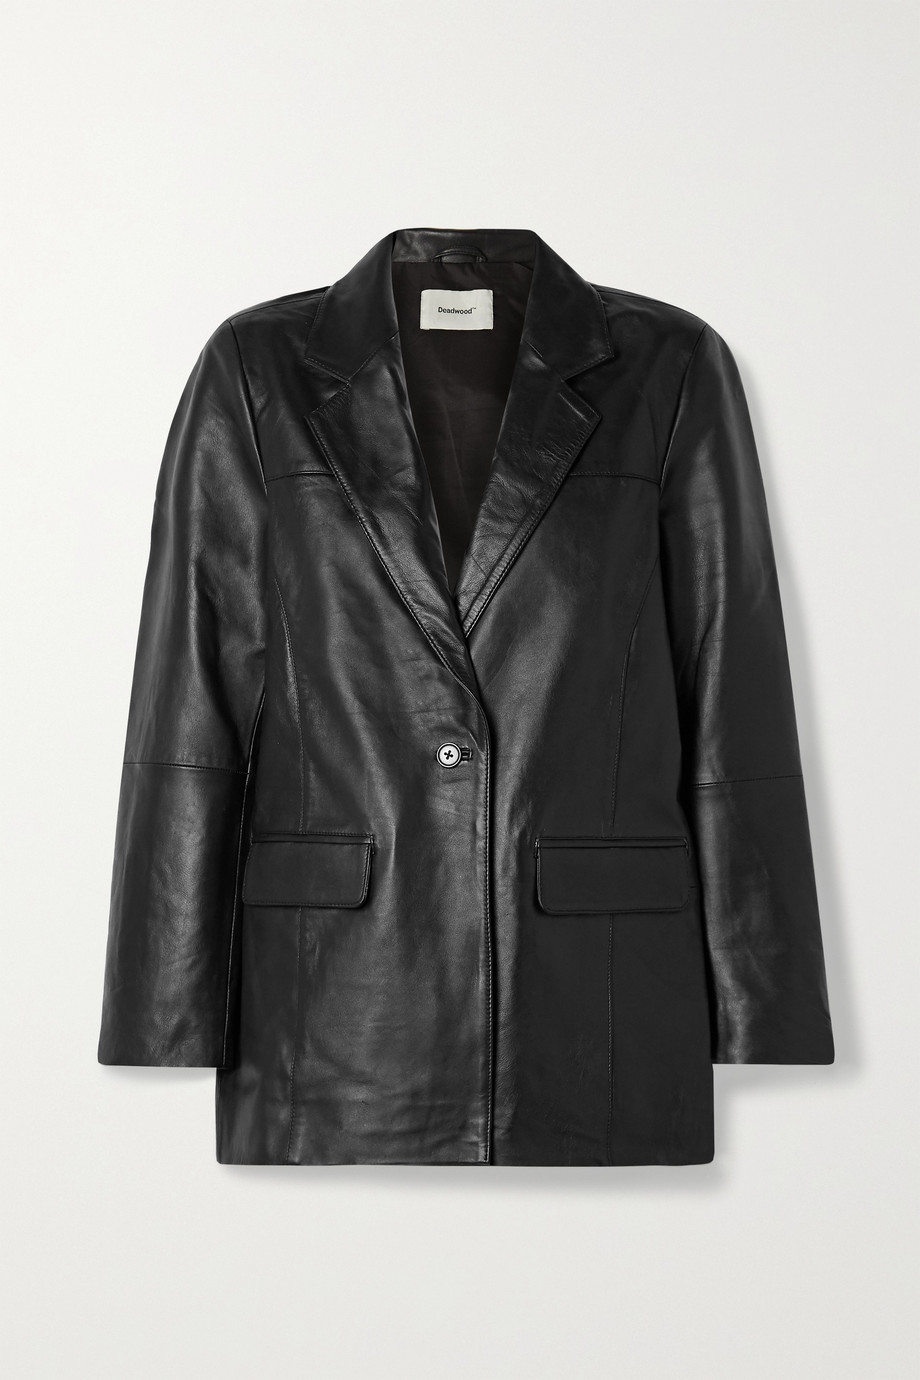 Deadwood + NET SUSTAIN Brooke leather blazer